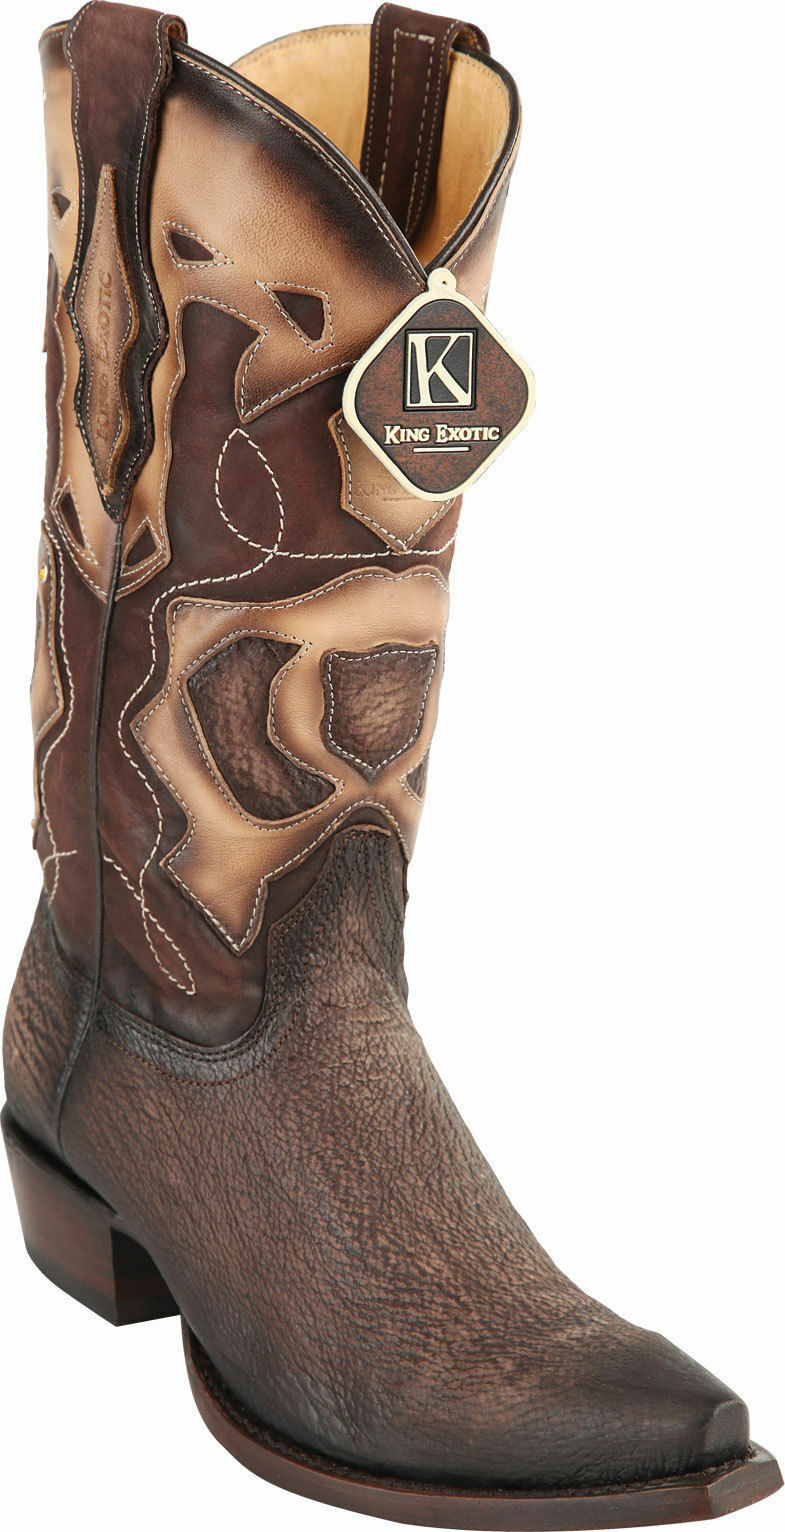 KING EXOTIC BROWN SNIP TOE GENUINE SHARK WESTERN COWBOY BOOT EE 94R0907